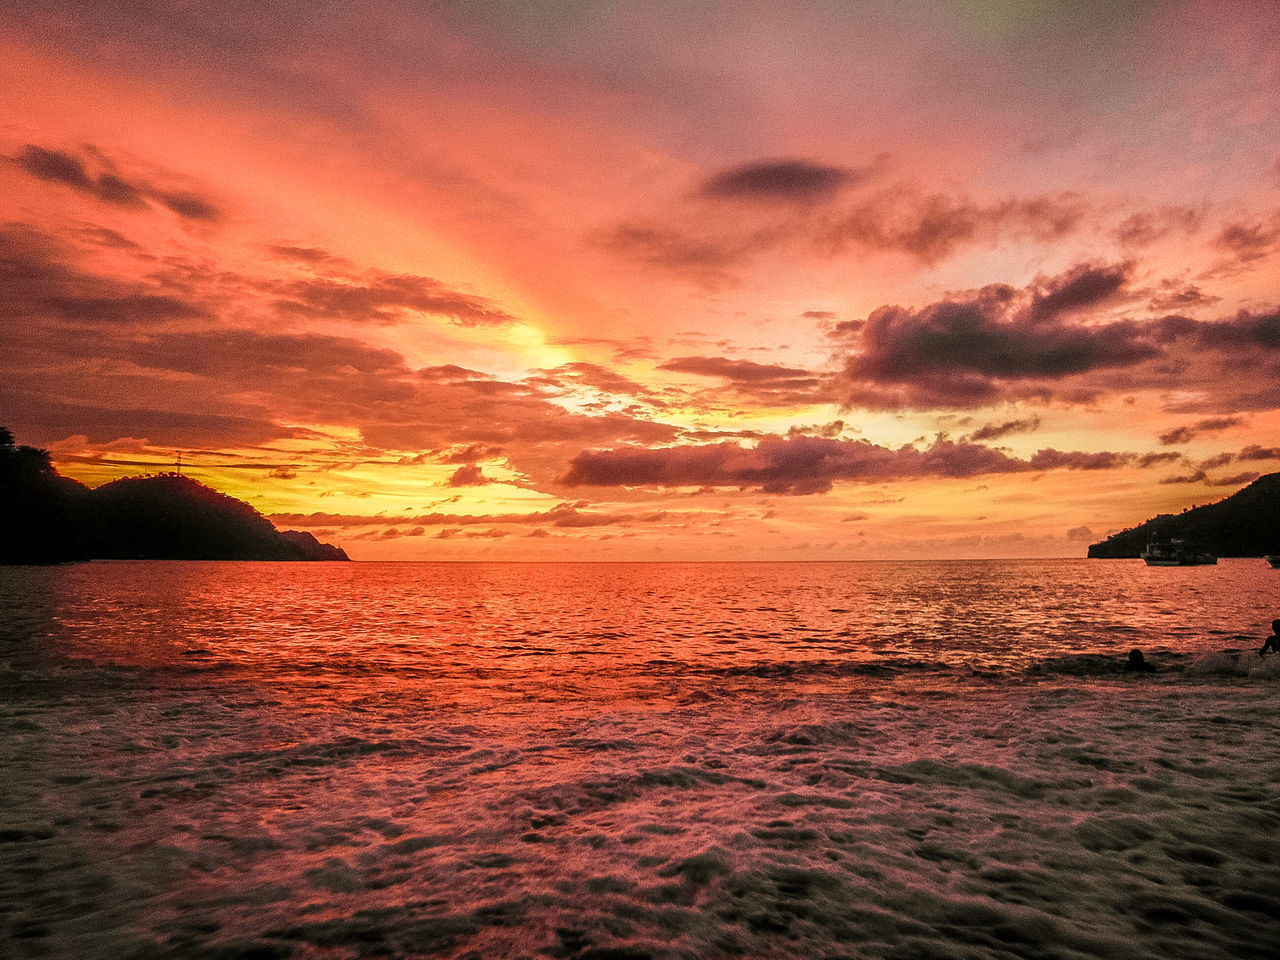 Colorful sunset at the beach Beach Beauty In Nature Clouds Dramatic Sky Foam Idyllic Nature Outdoors Red Reflection Scenics Sea Sunset Tranquil Scene Tranquility Water